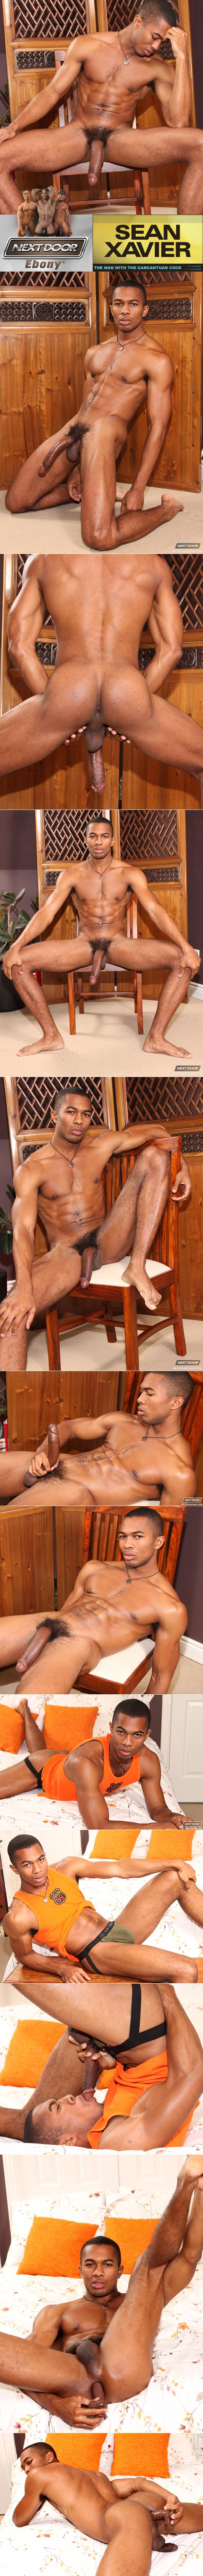 NextDoorEbony: Big-dicked stud Sean Xavier sucks and fucks himself